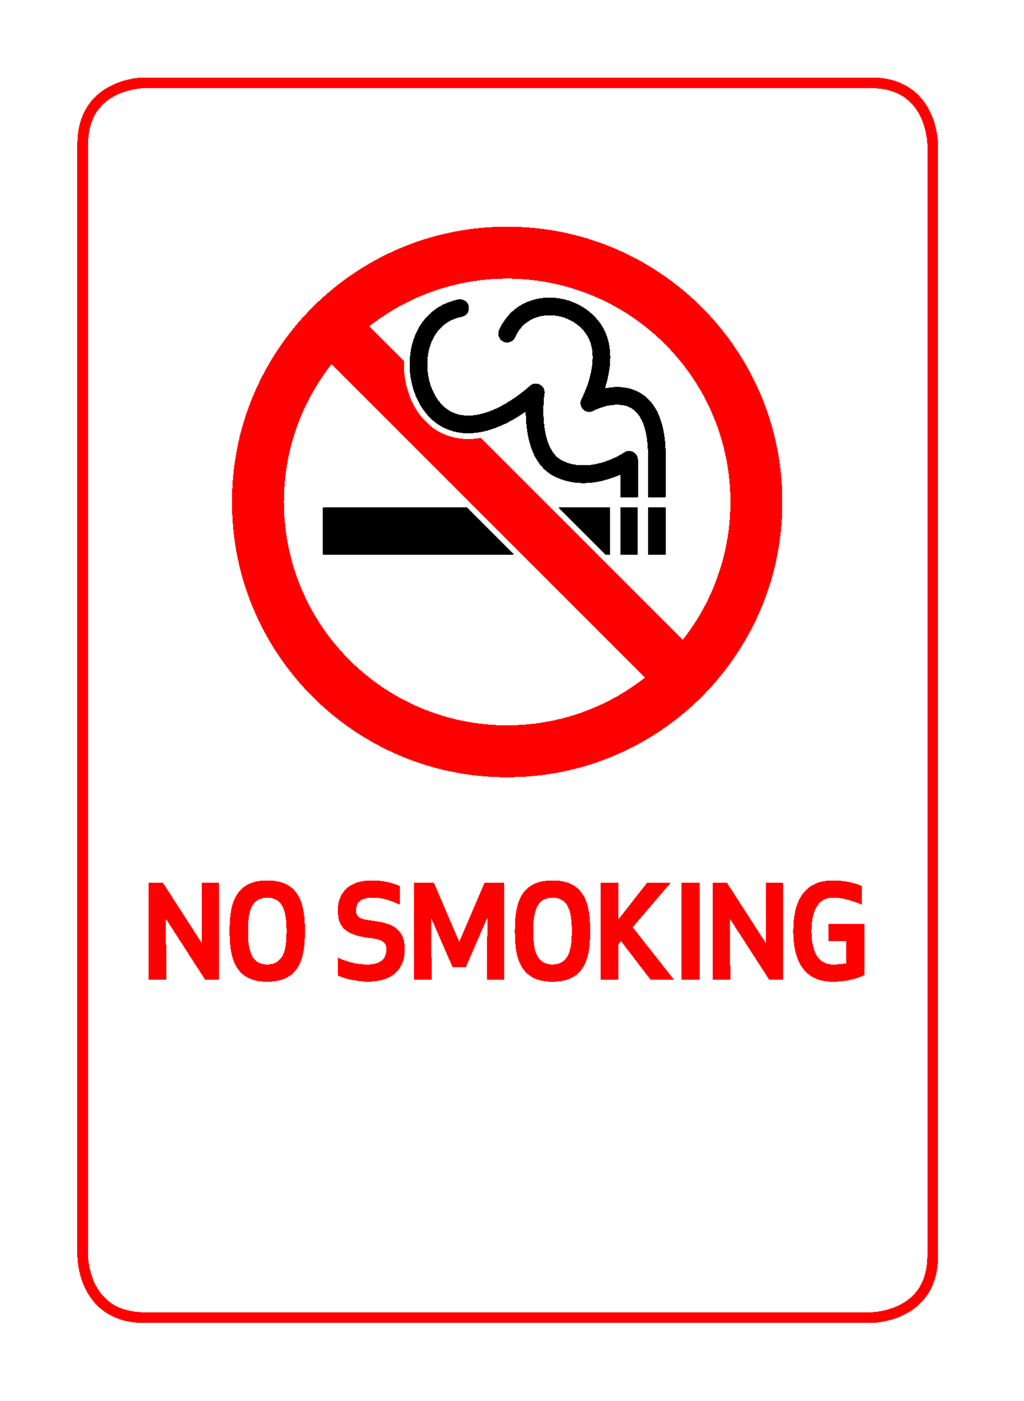 No photo available clipart graphic royalty free library Free No Smoking Icon, Download Free Clip Art, Free Clip Art ... graphic royalty free library